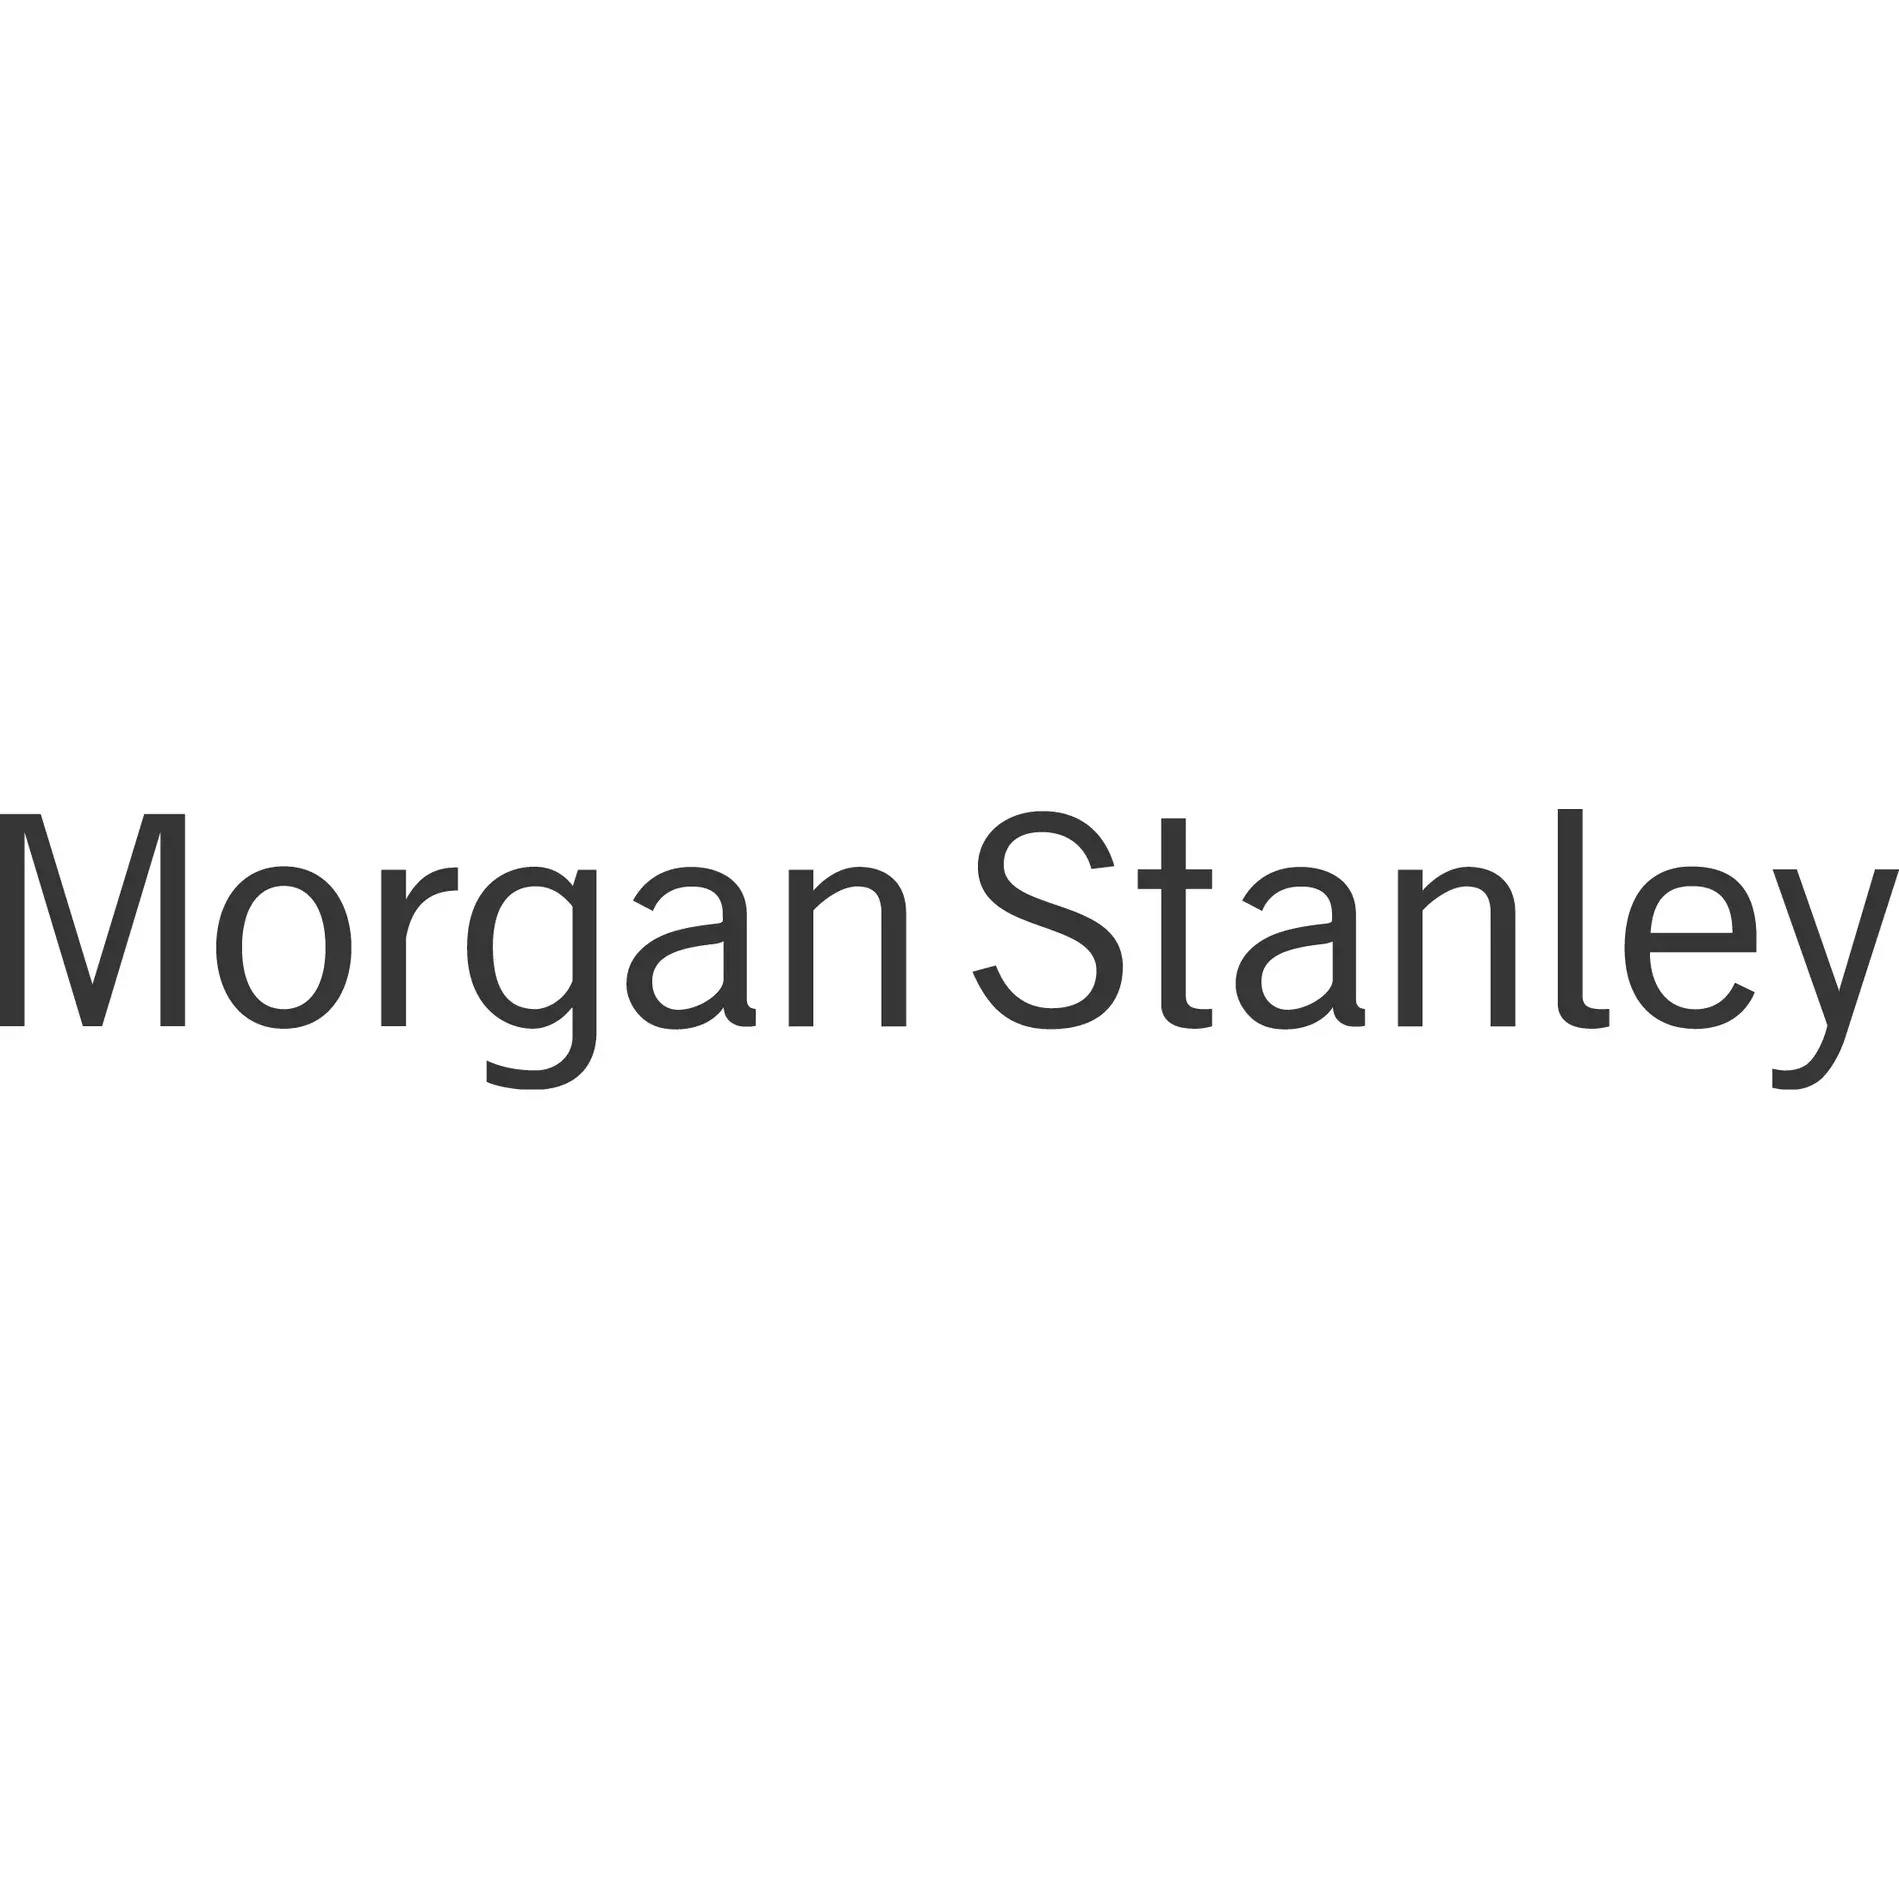 The Burns / Marchiano Group - Morgan Stanley